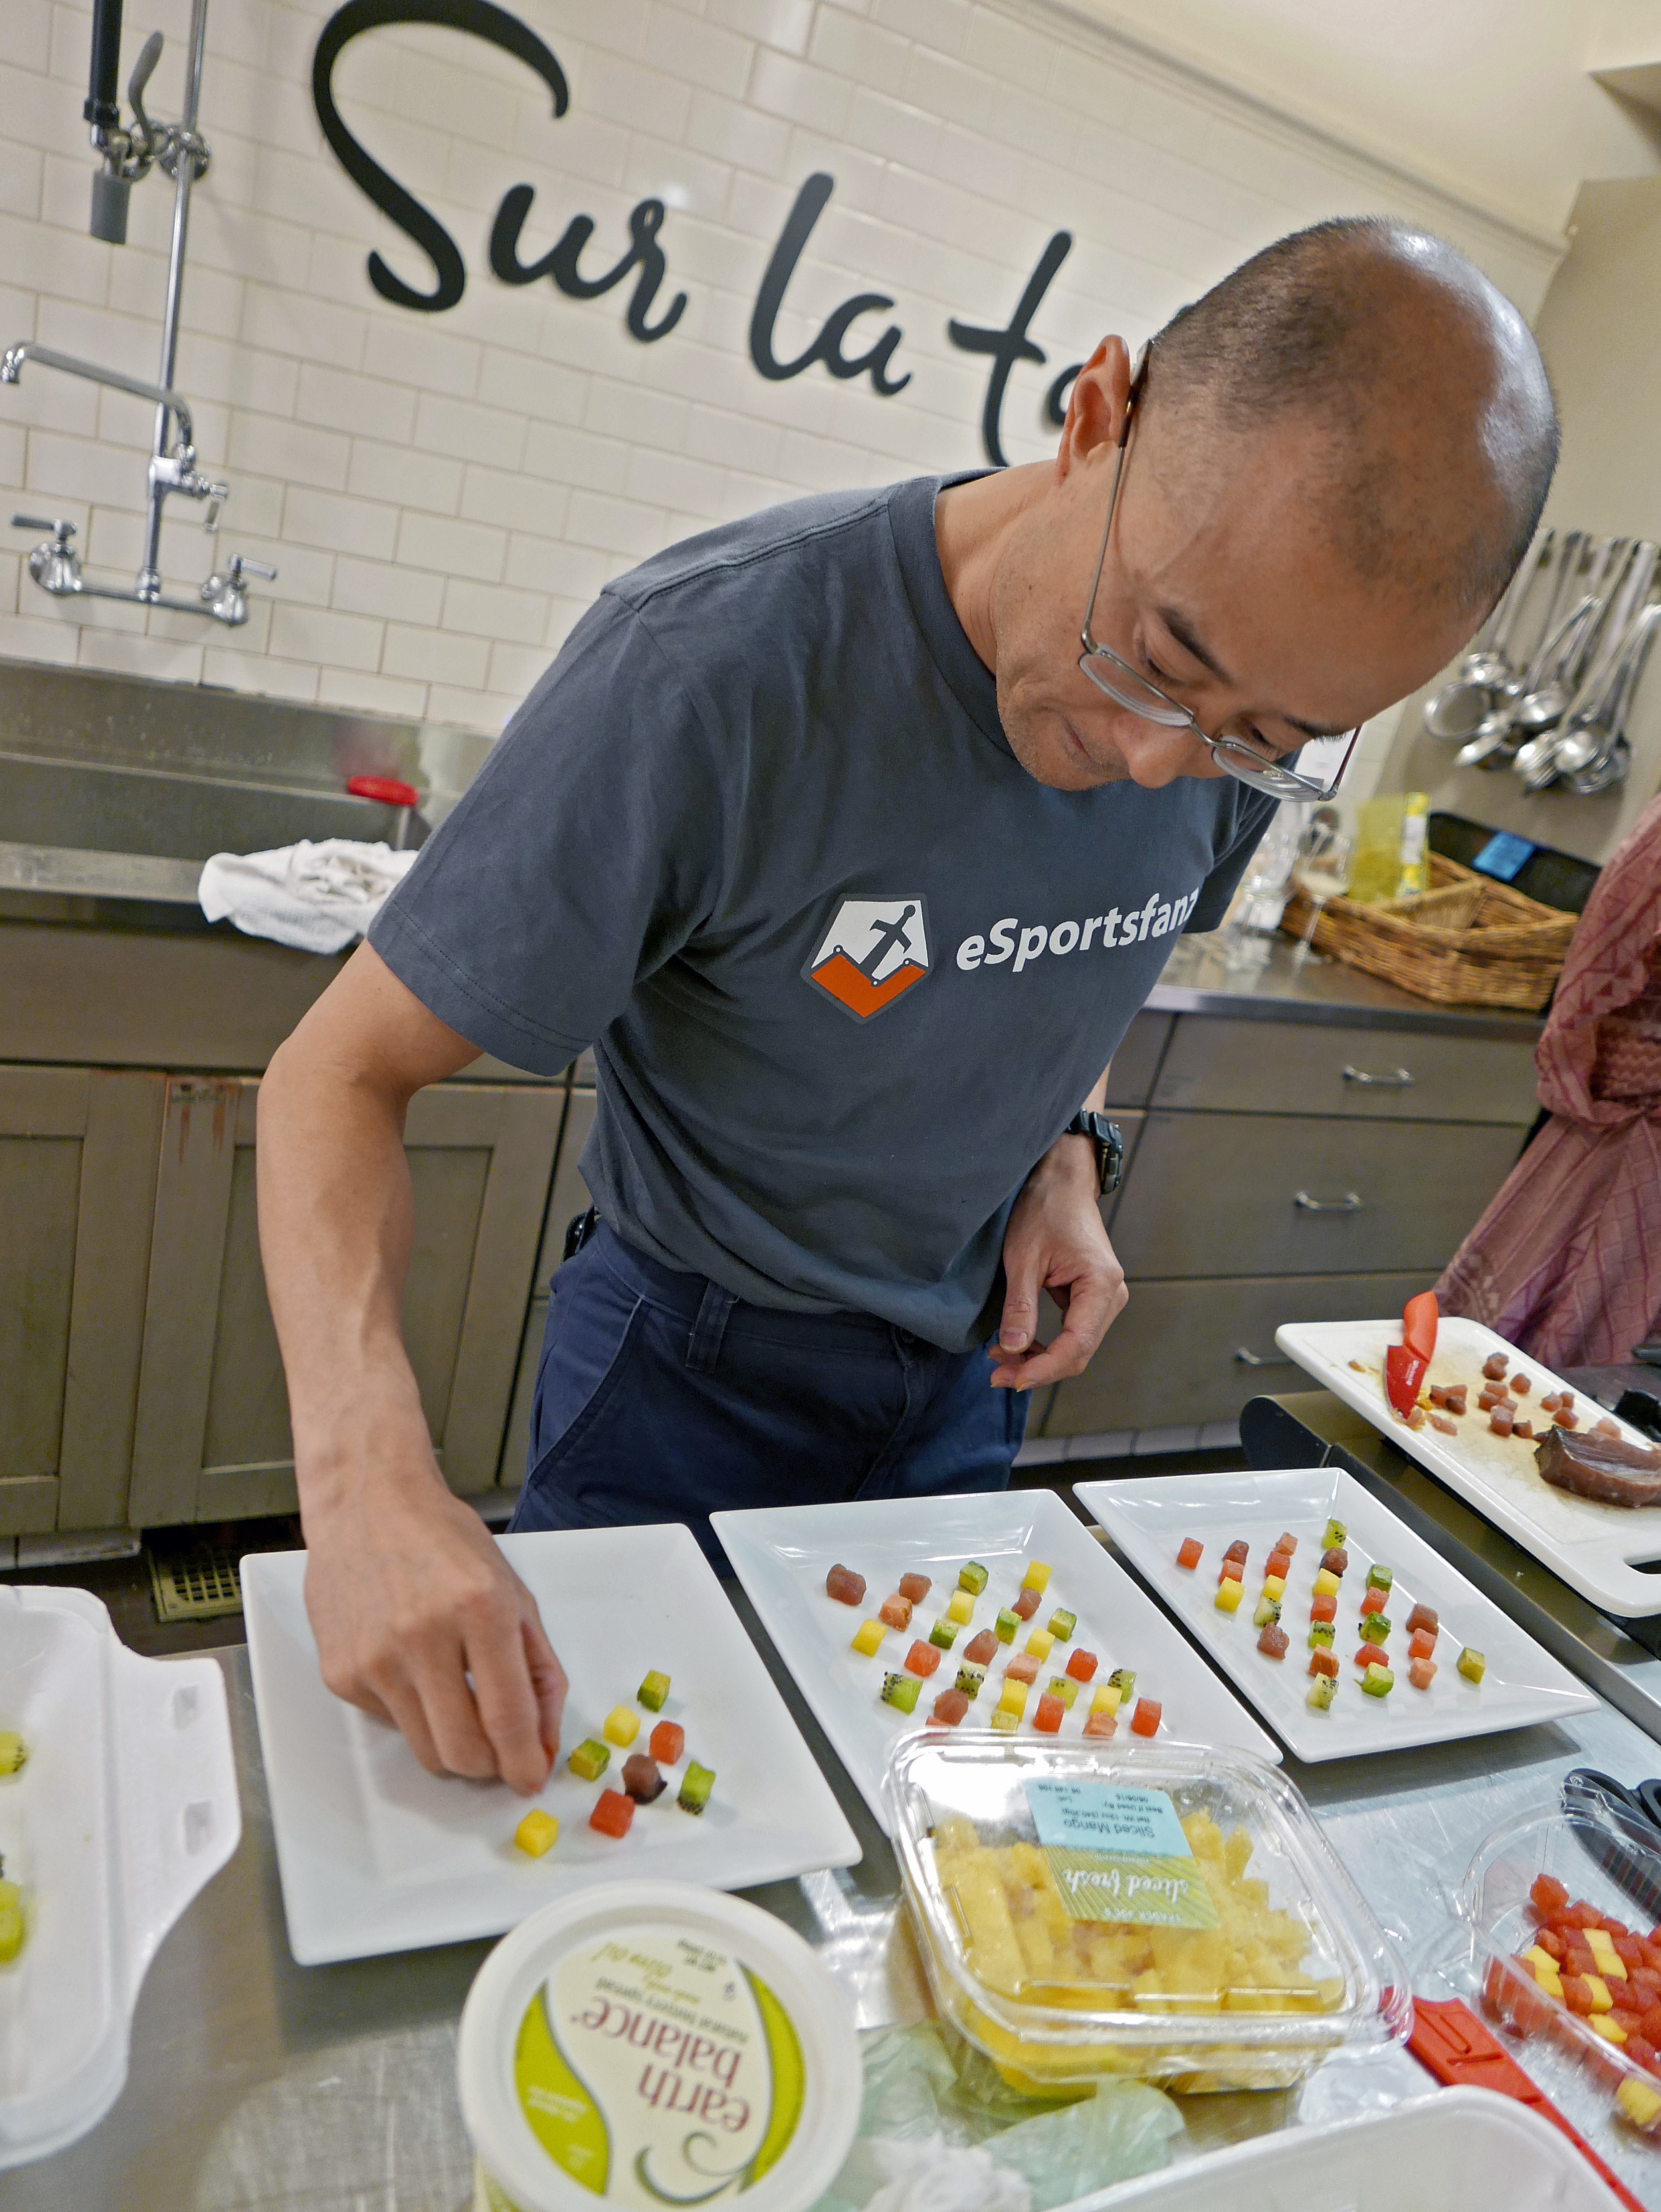 stanford-food-experience-design_18493796672_o.jpg